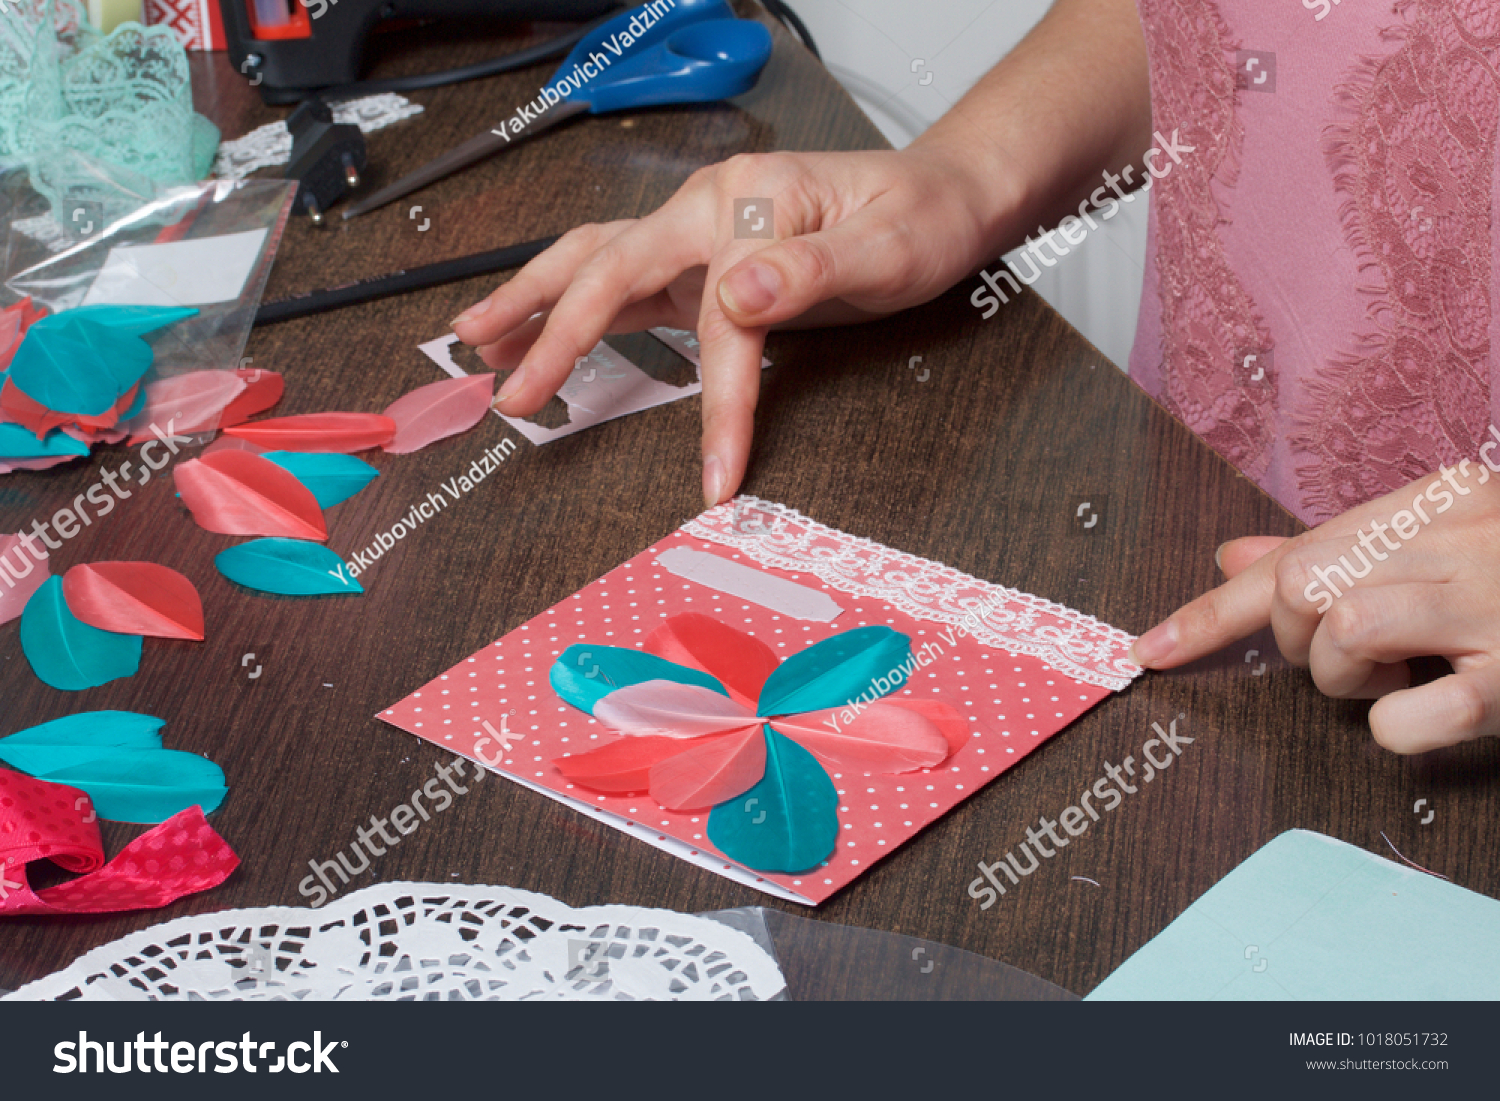 Girl engaged making greeting cards home stock photo royalty free girl engaged making greeting cards home stock photo royalty free 1018051732 shutterstock m4hsunfo